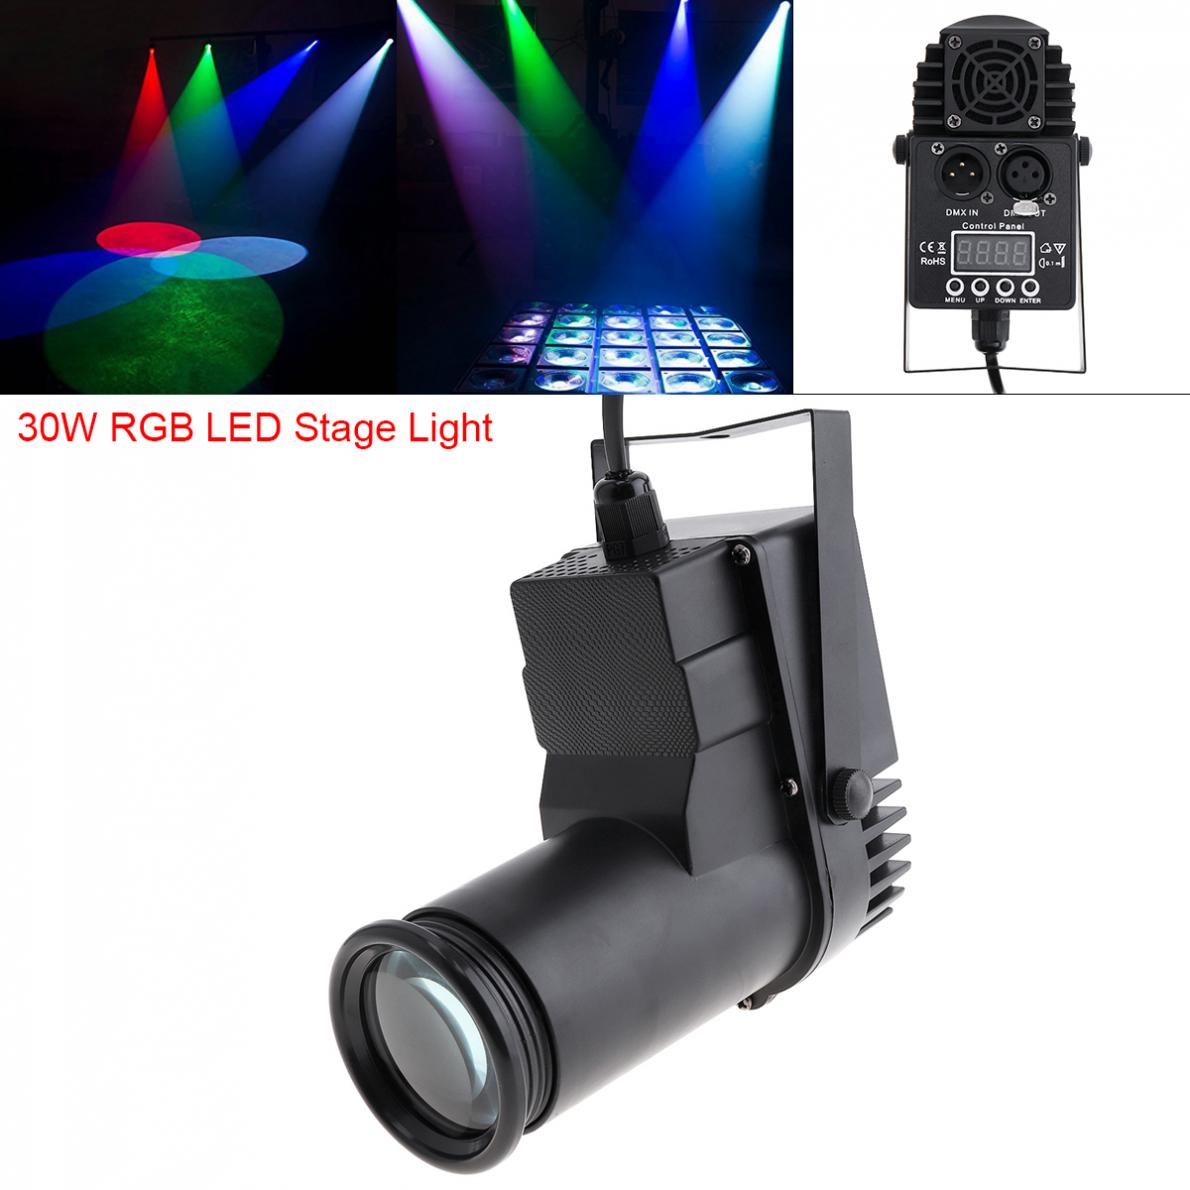 30W RGBW 4 In1 DMX Full Color LED Spotlight Stage Light Spot Beam 6Channel Atmosphere Light With Voice Control For Bar Stage KTV